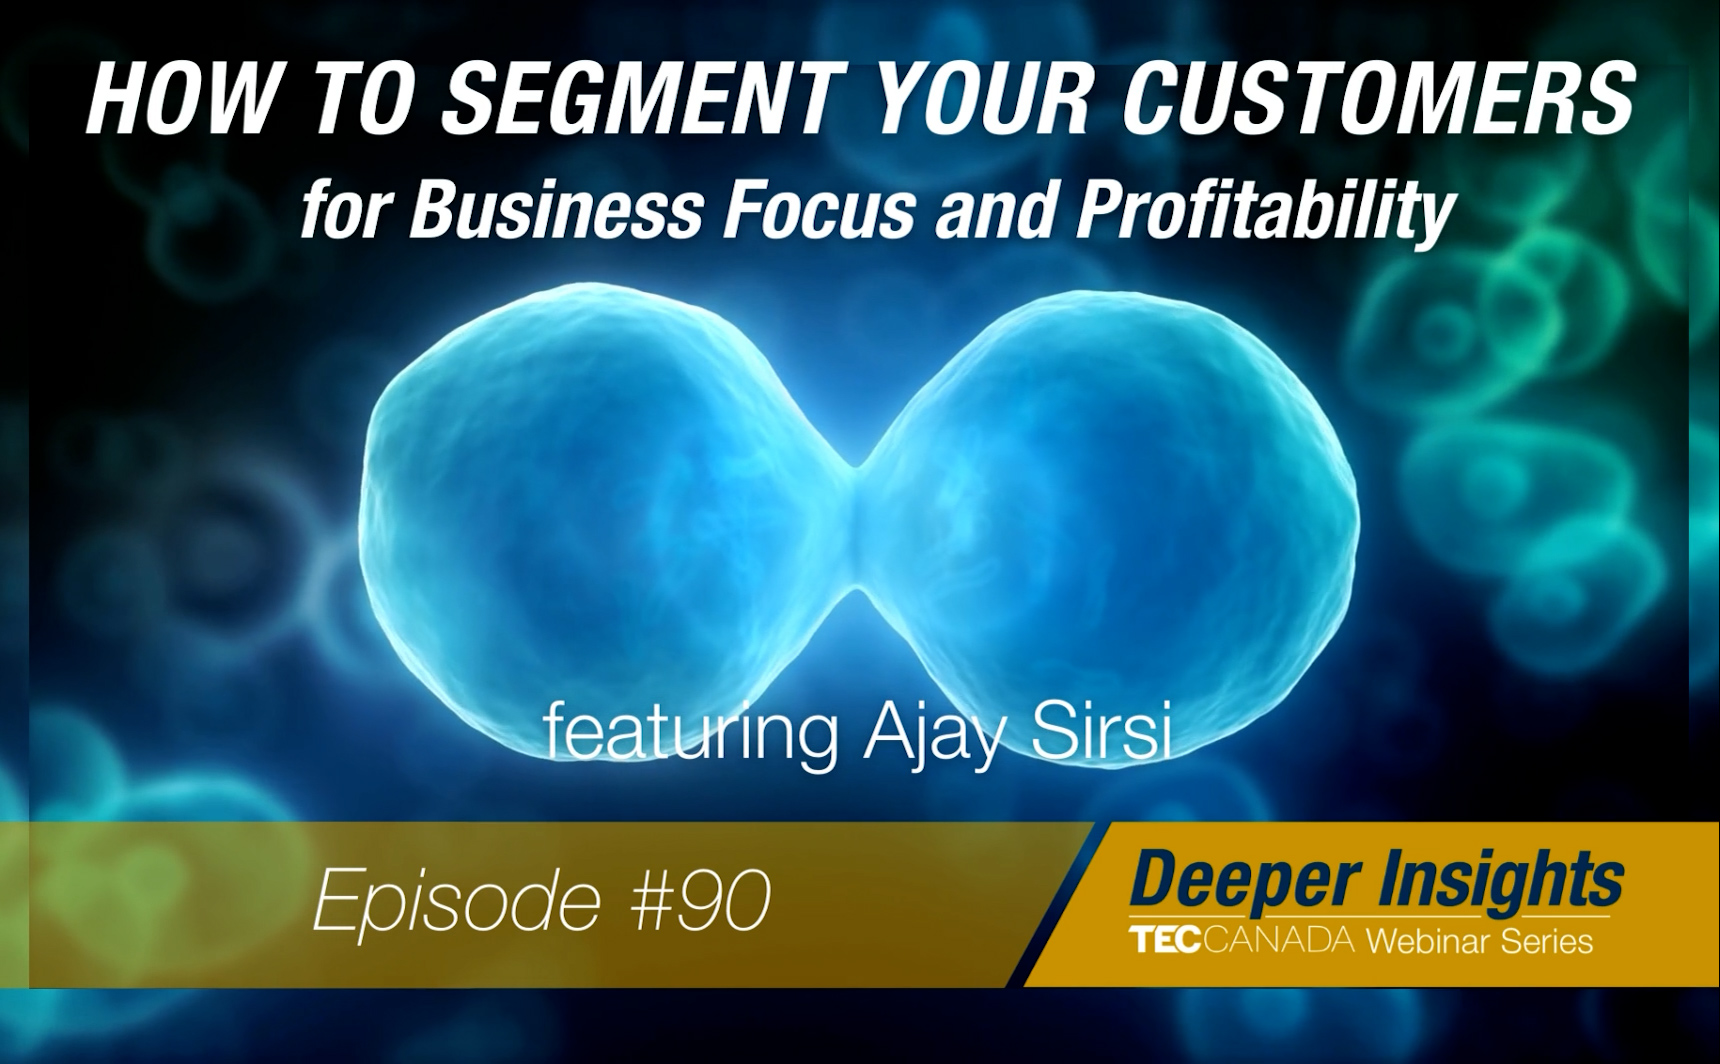 Segment Your Customers for Business Focus and Profitability